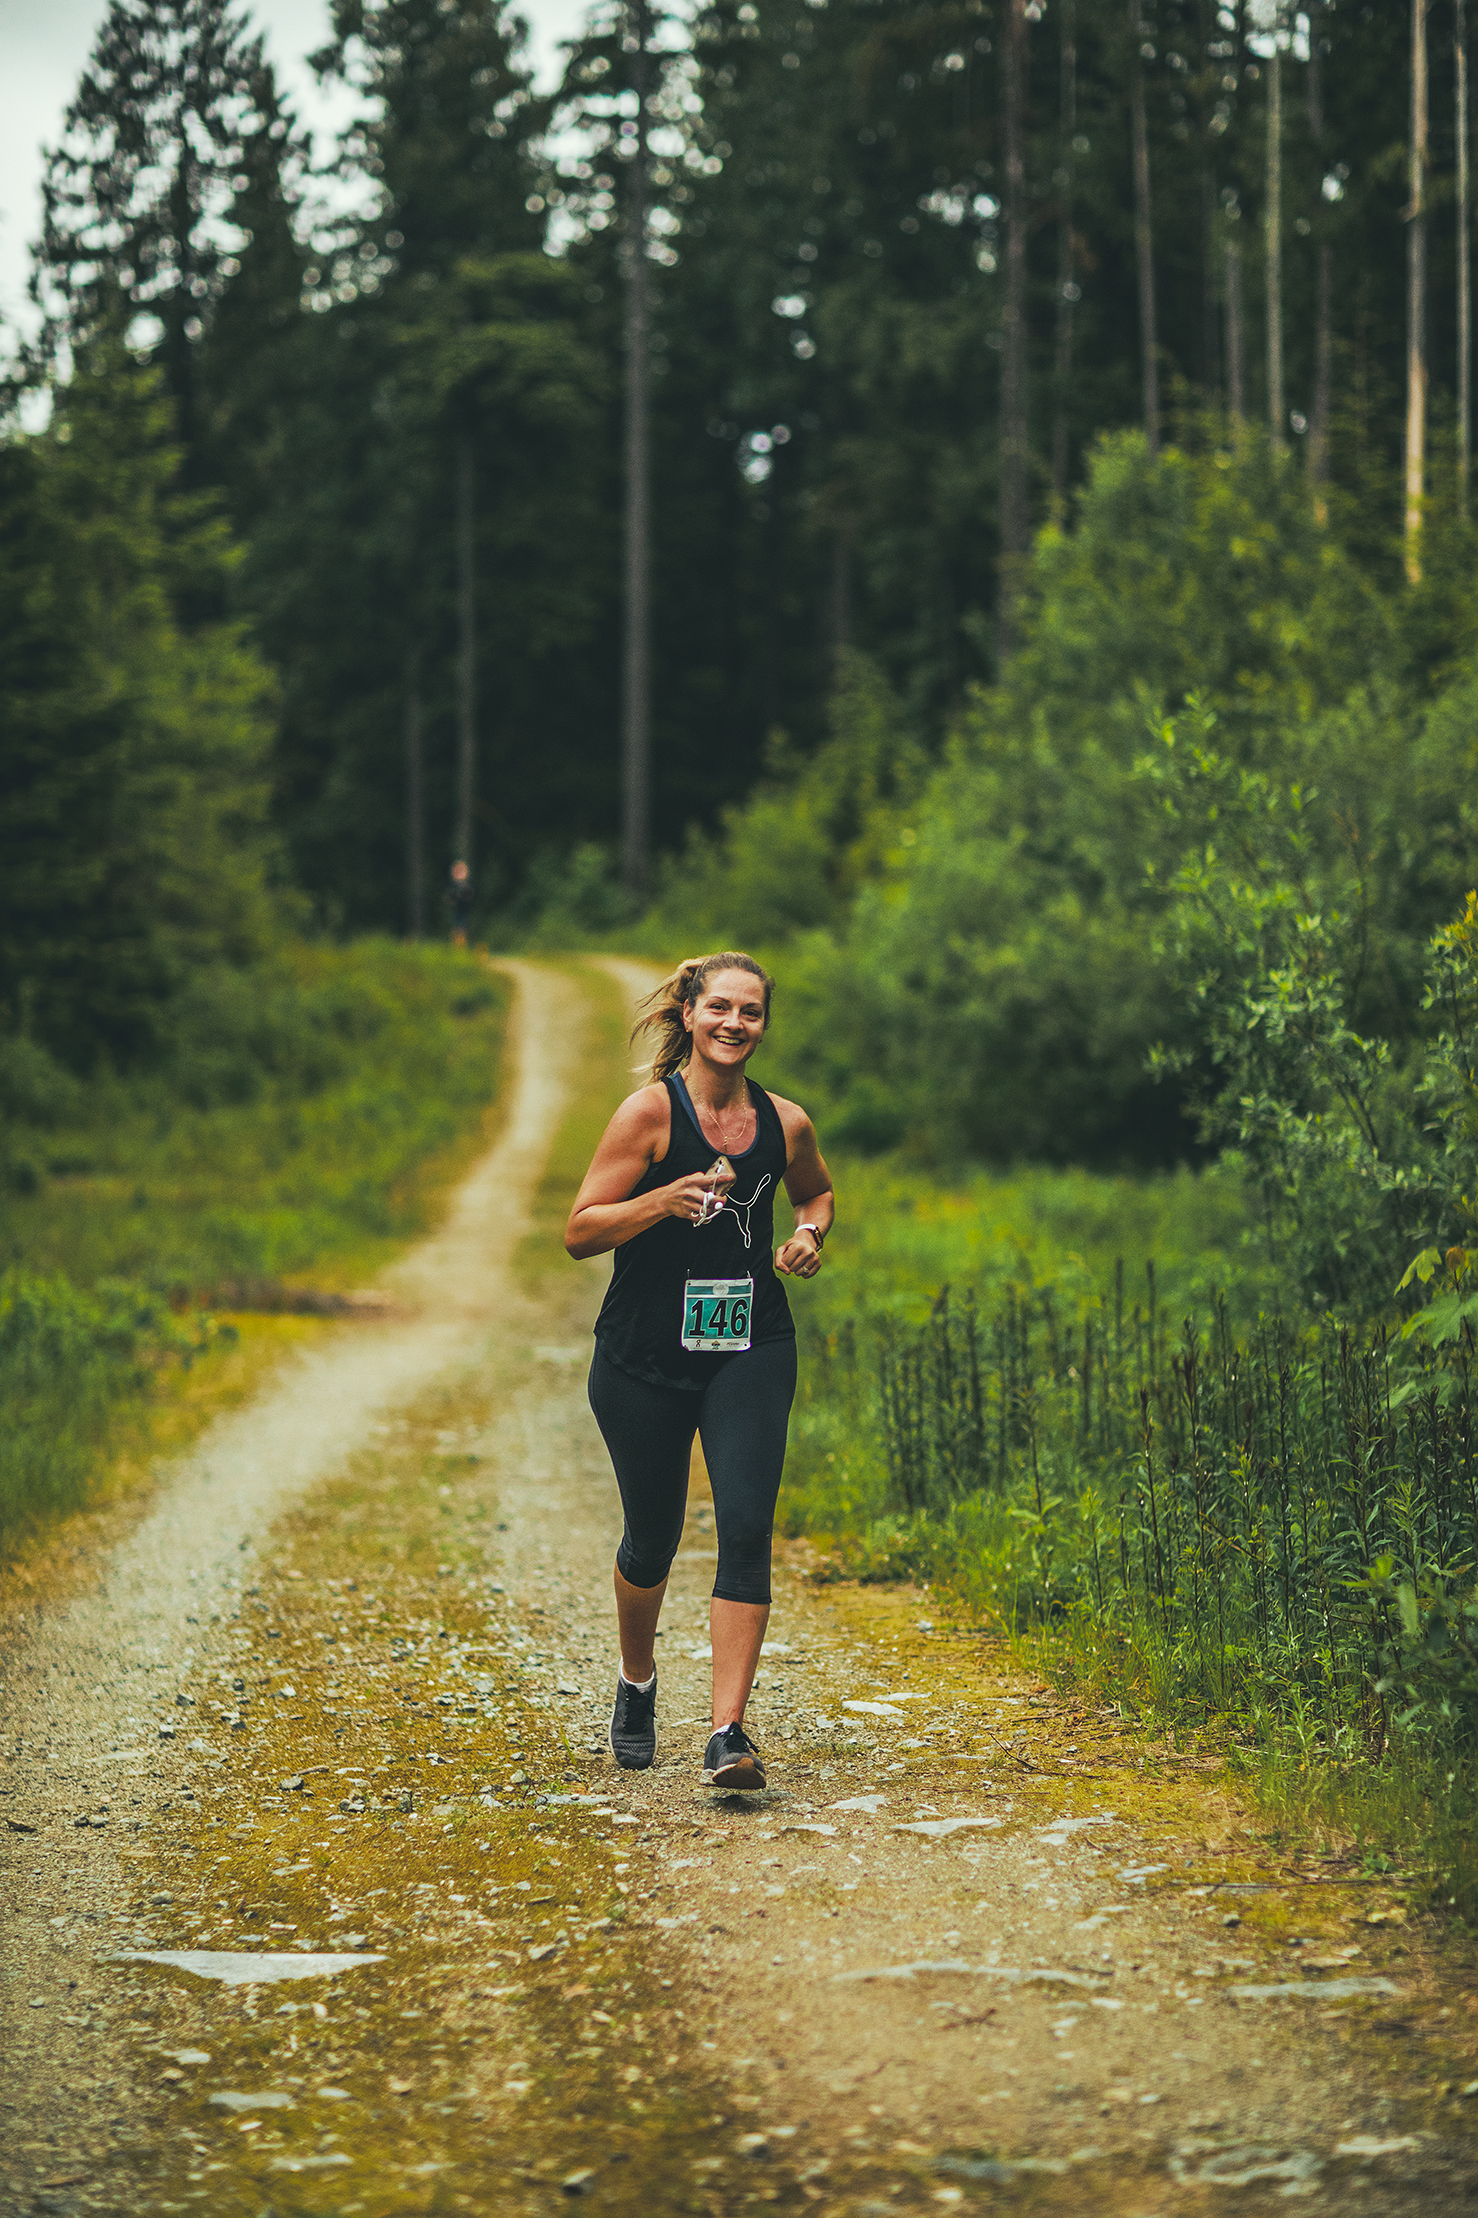 Fraser Valley Trail Races - Bear Mountain - IMG_1942 by Brice Ferre Studio - Vancouver Portrait Adventure and Athlete Photographer.jpg